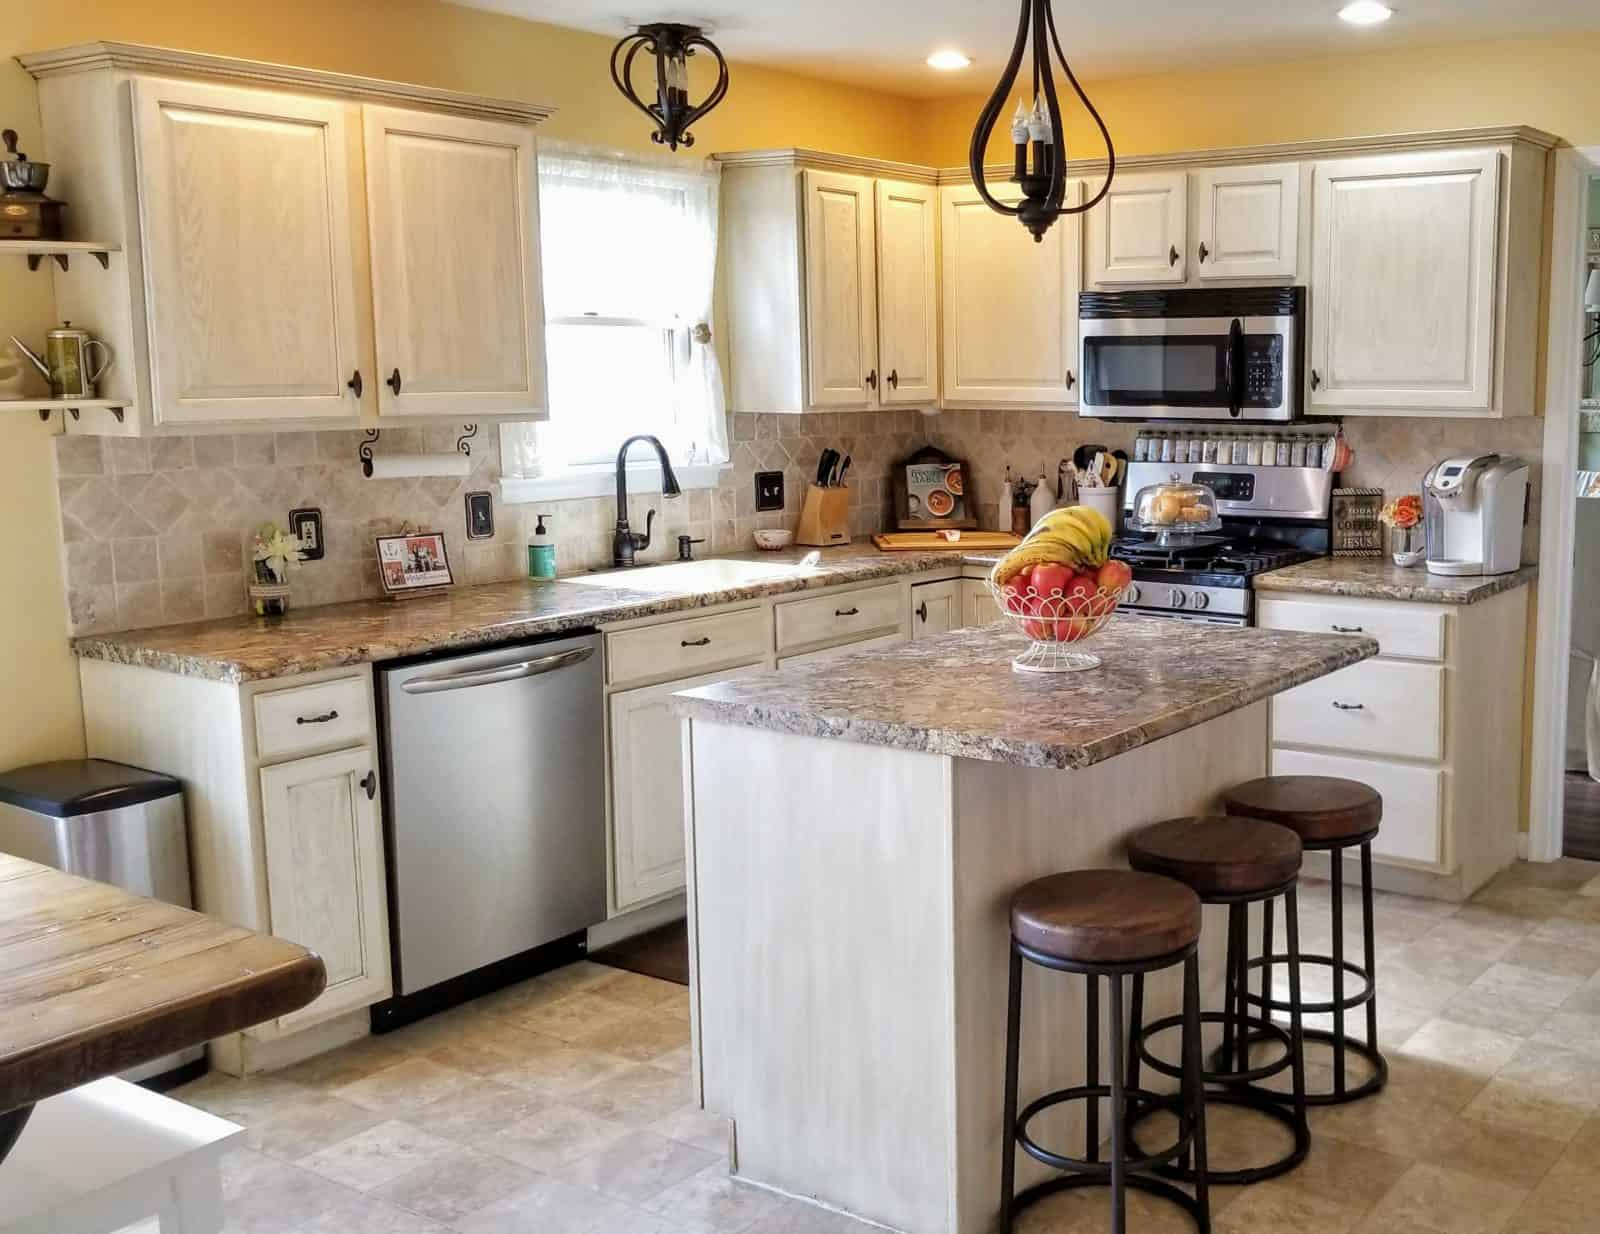 Staging Tips to Sell a House